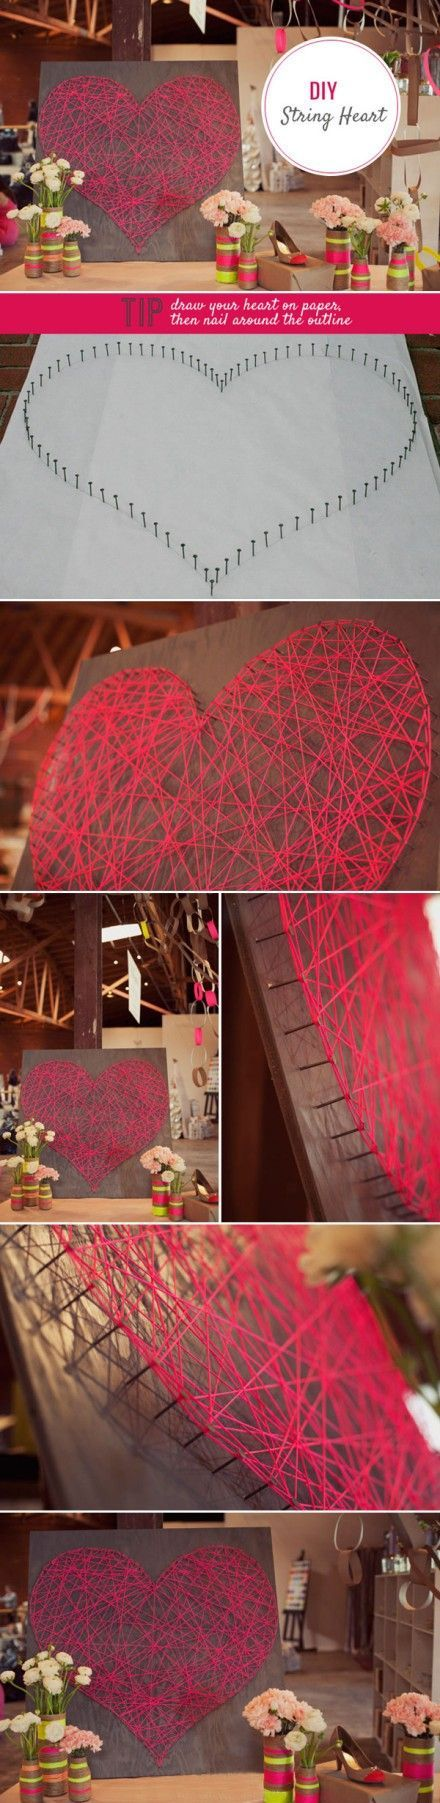 Wedding decoration ideas for bedroom  Romantic Bedroom Projects  Diy string art Green weddings and